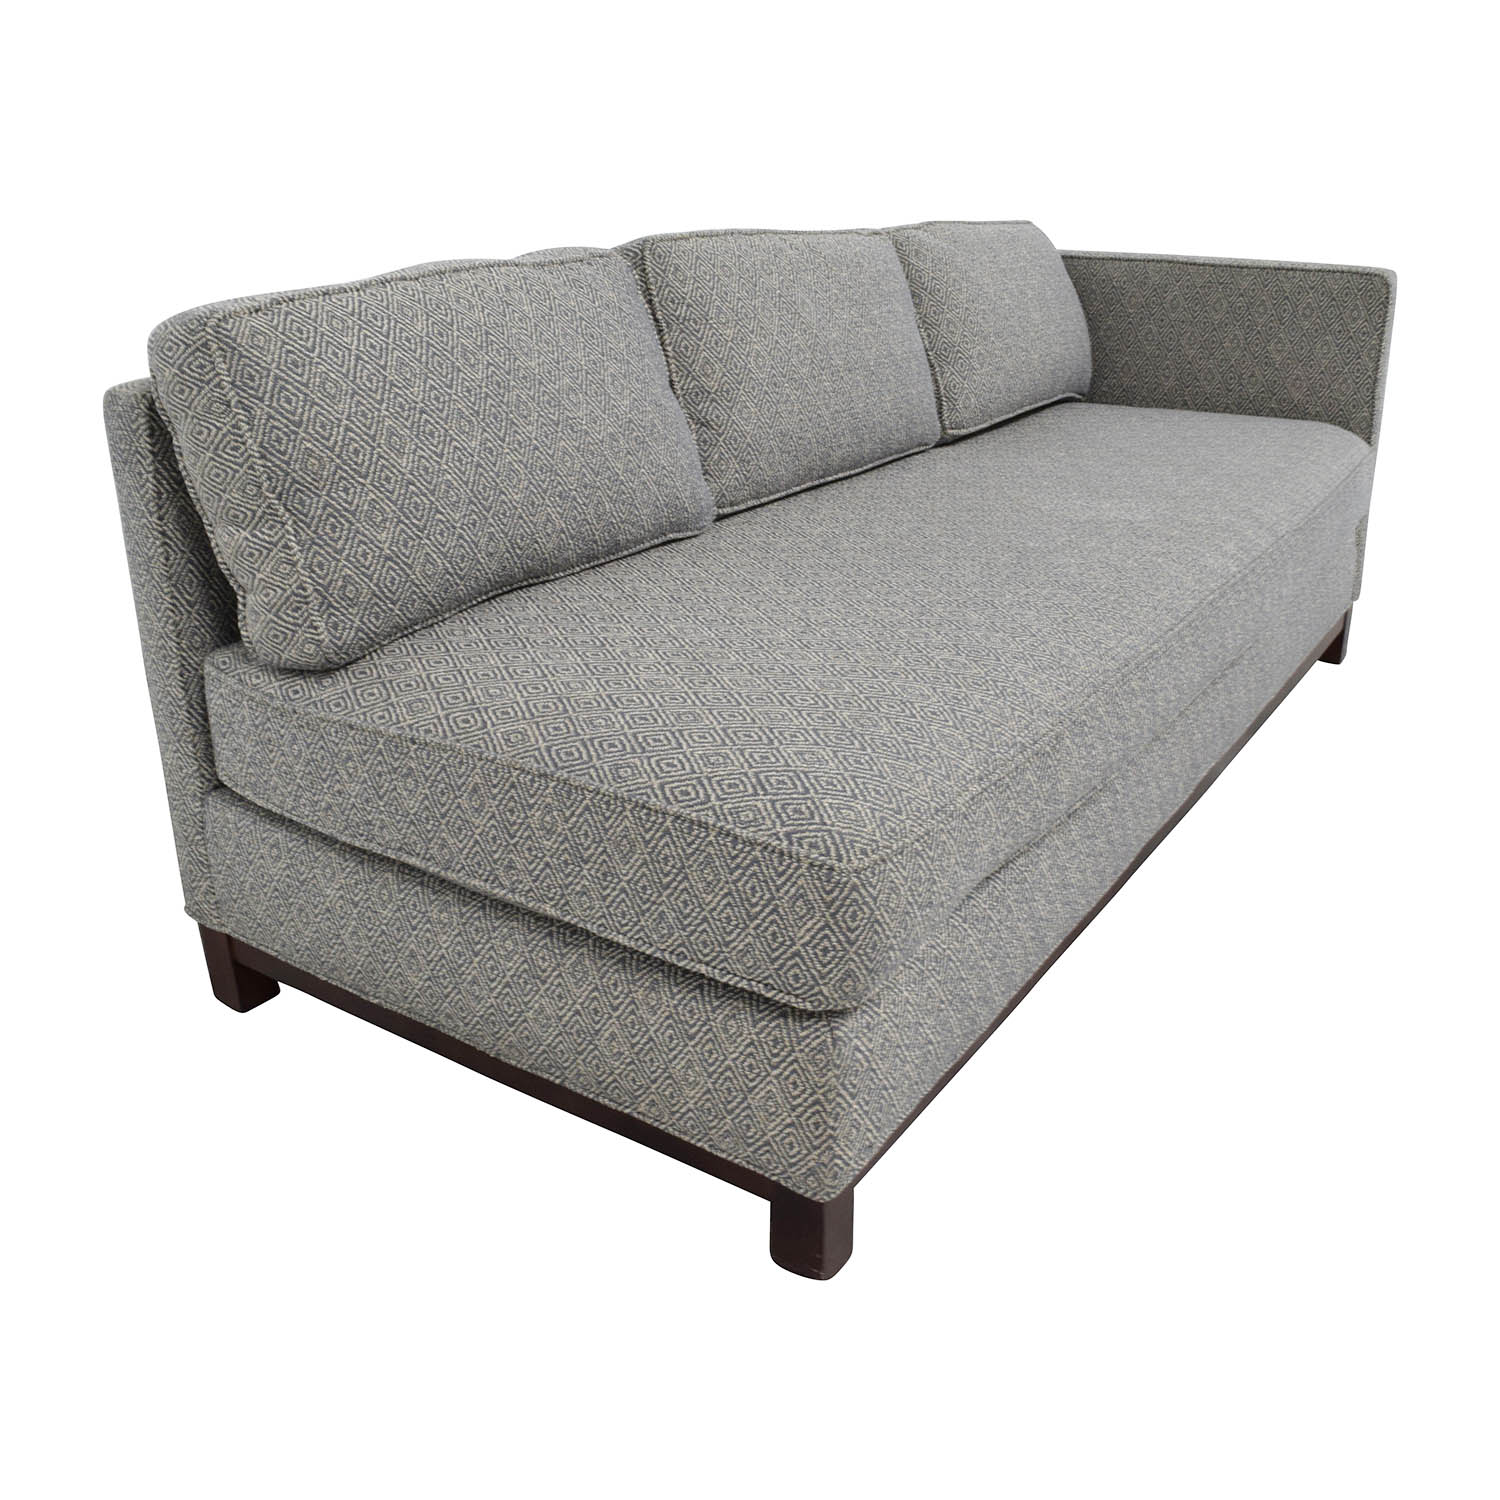 36 off mitchell gold mitchell gold clifton sofa sofas for Cheap classic sofas